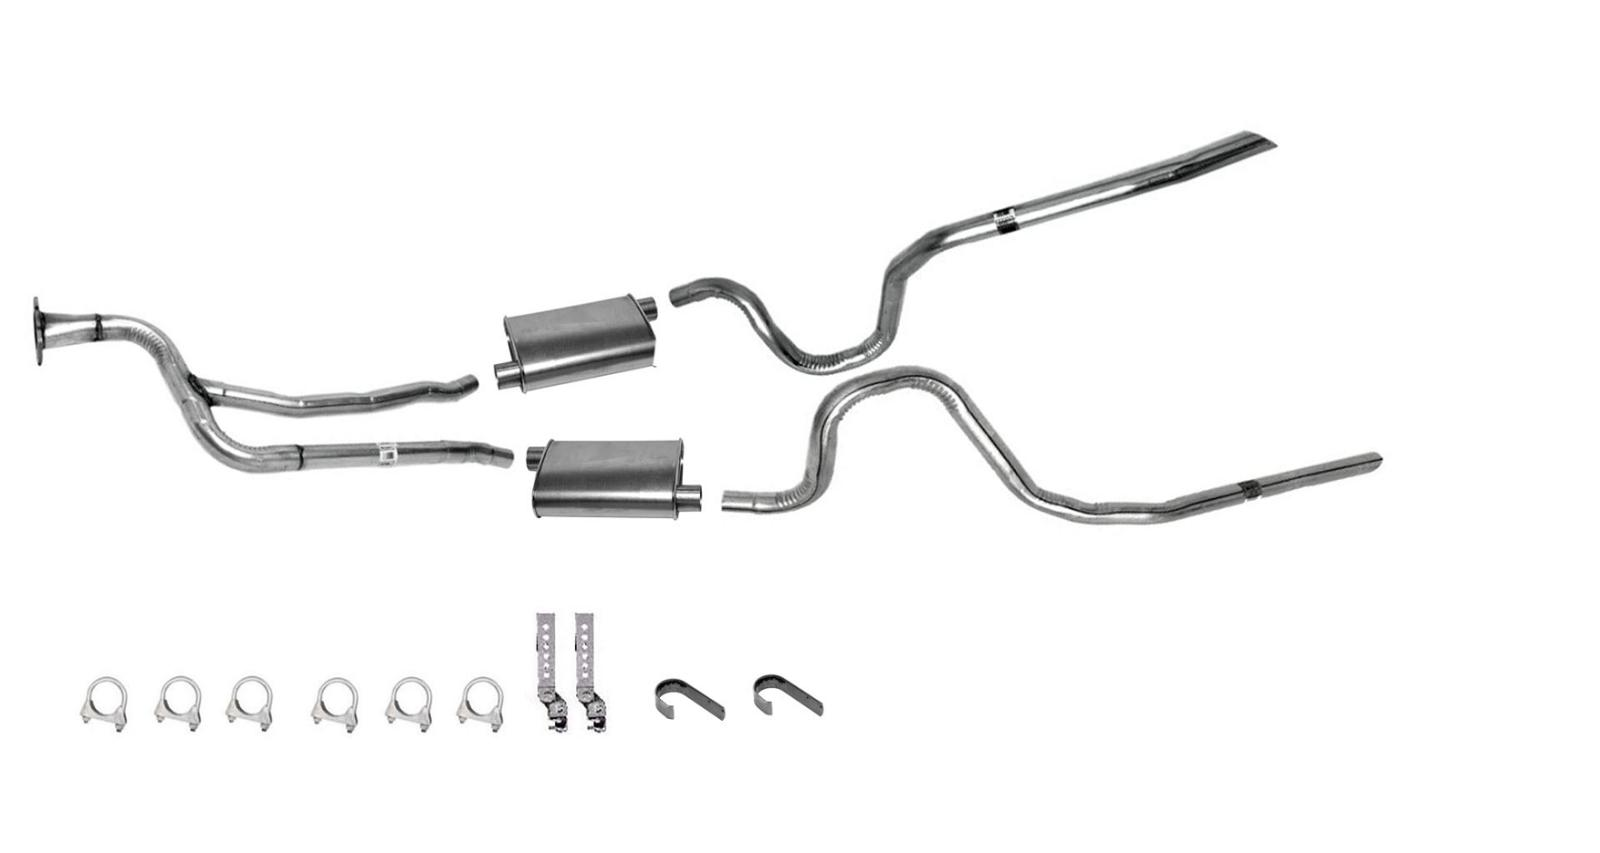 2002 chevy cavalier exhaust system diagram venn for first grade monte carlo ss ebay autos post